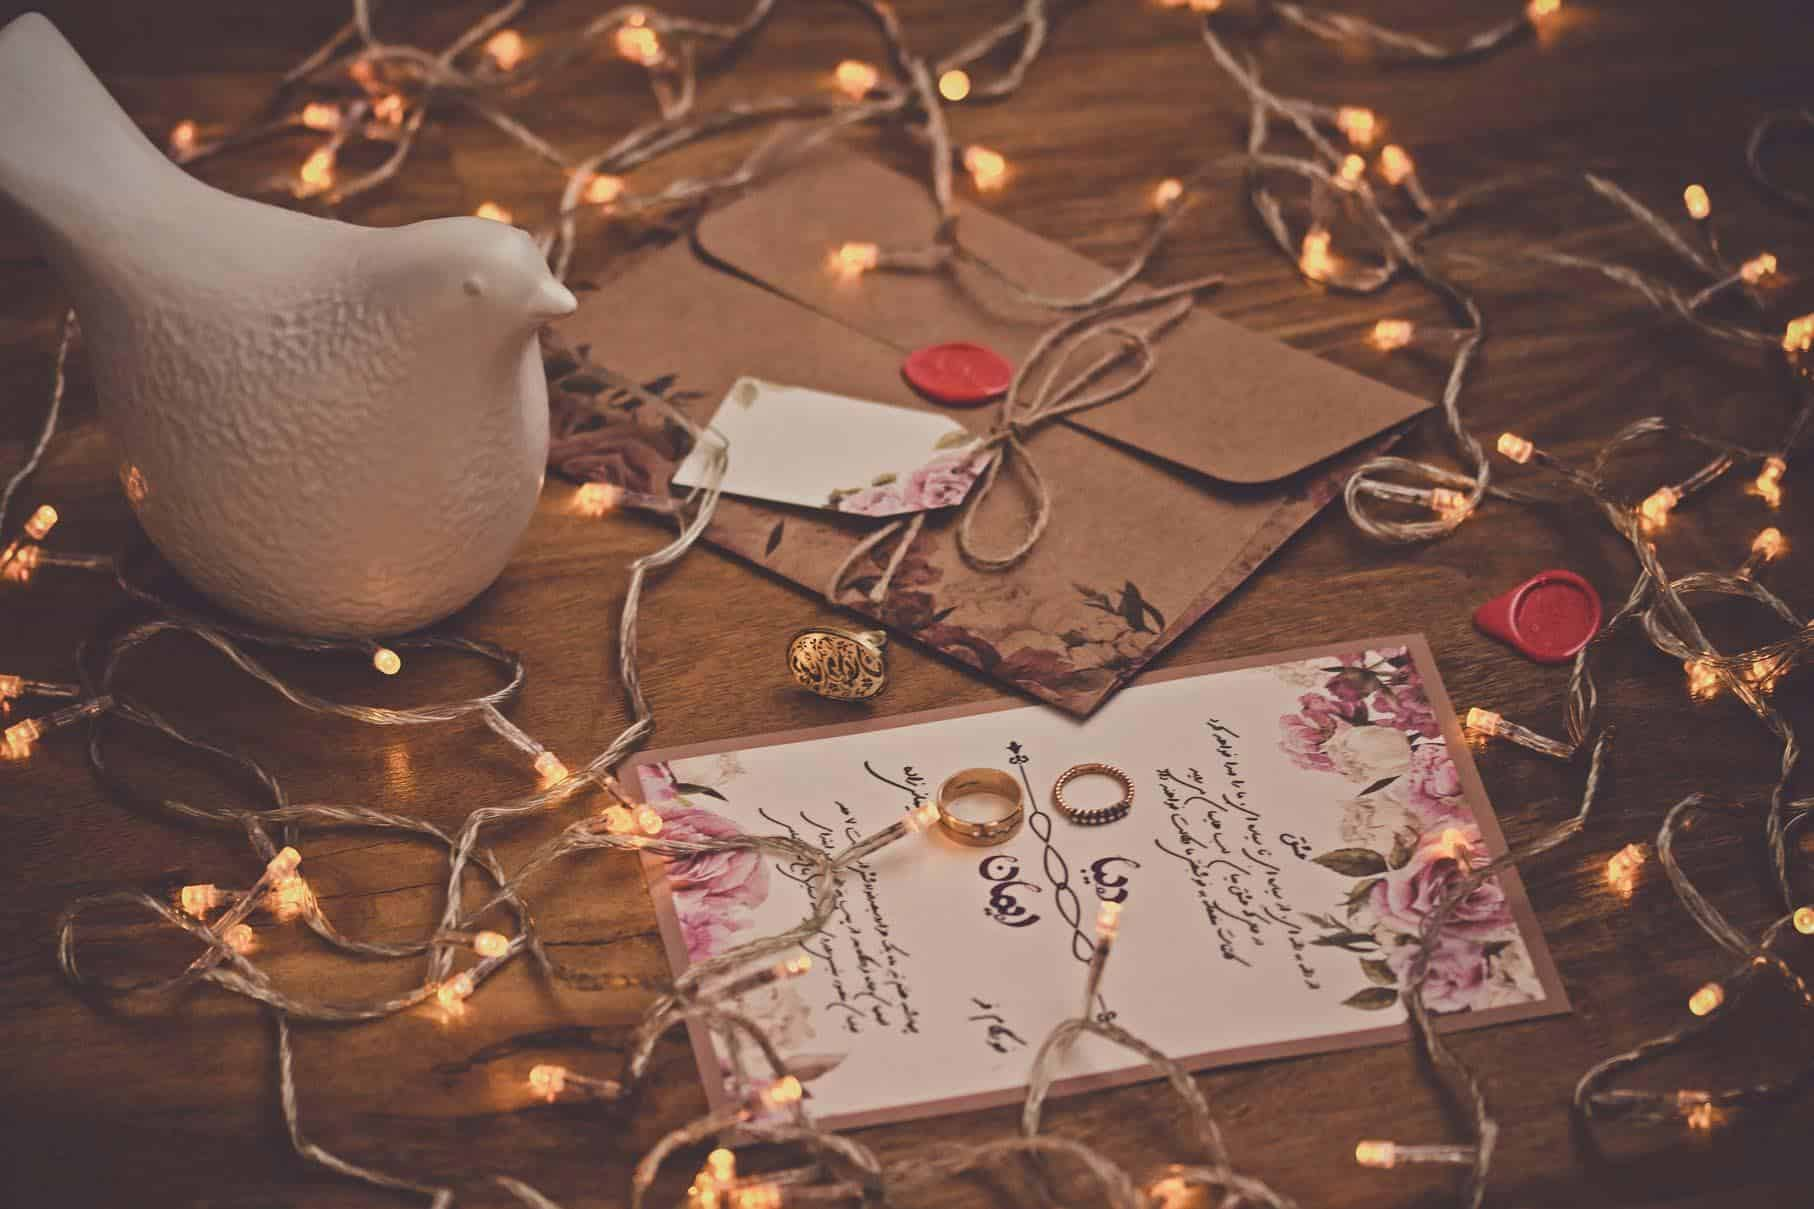 D:\Работа\SEO\GUEST POSTS\POSTS 2019\15.07.2019\Ryan Top 10 Trendy Wedding Invitations 2019\modern-wedding-invitations-romantic-floral-invitation-watercolor-Photo-by-Iman-soleimany-zadeh-on-Unsplash.jpg